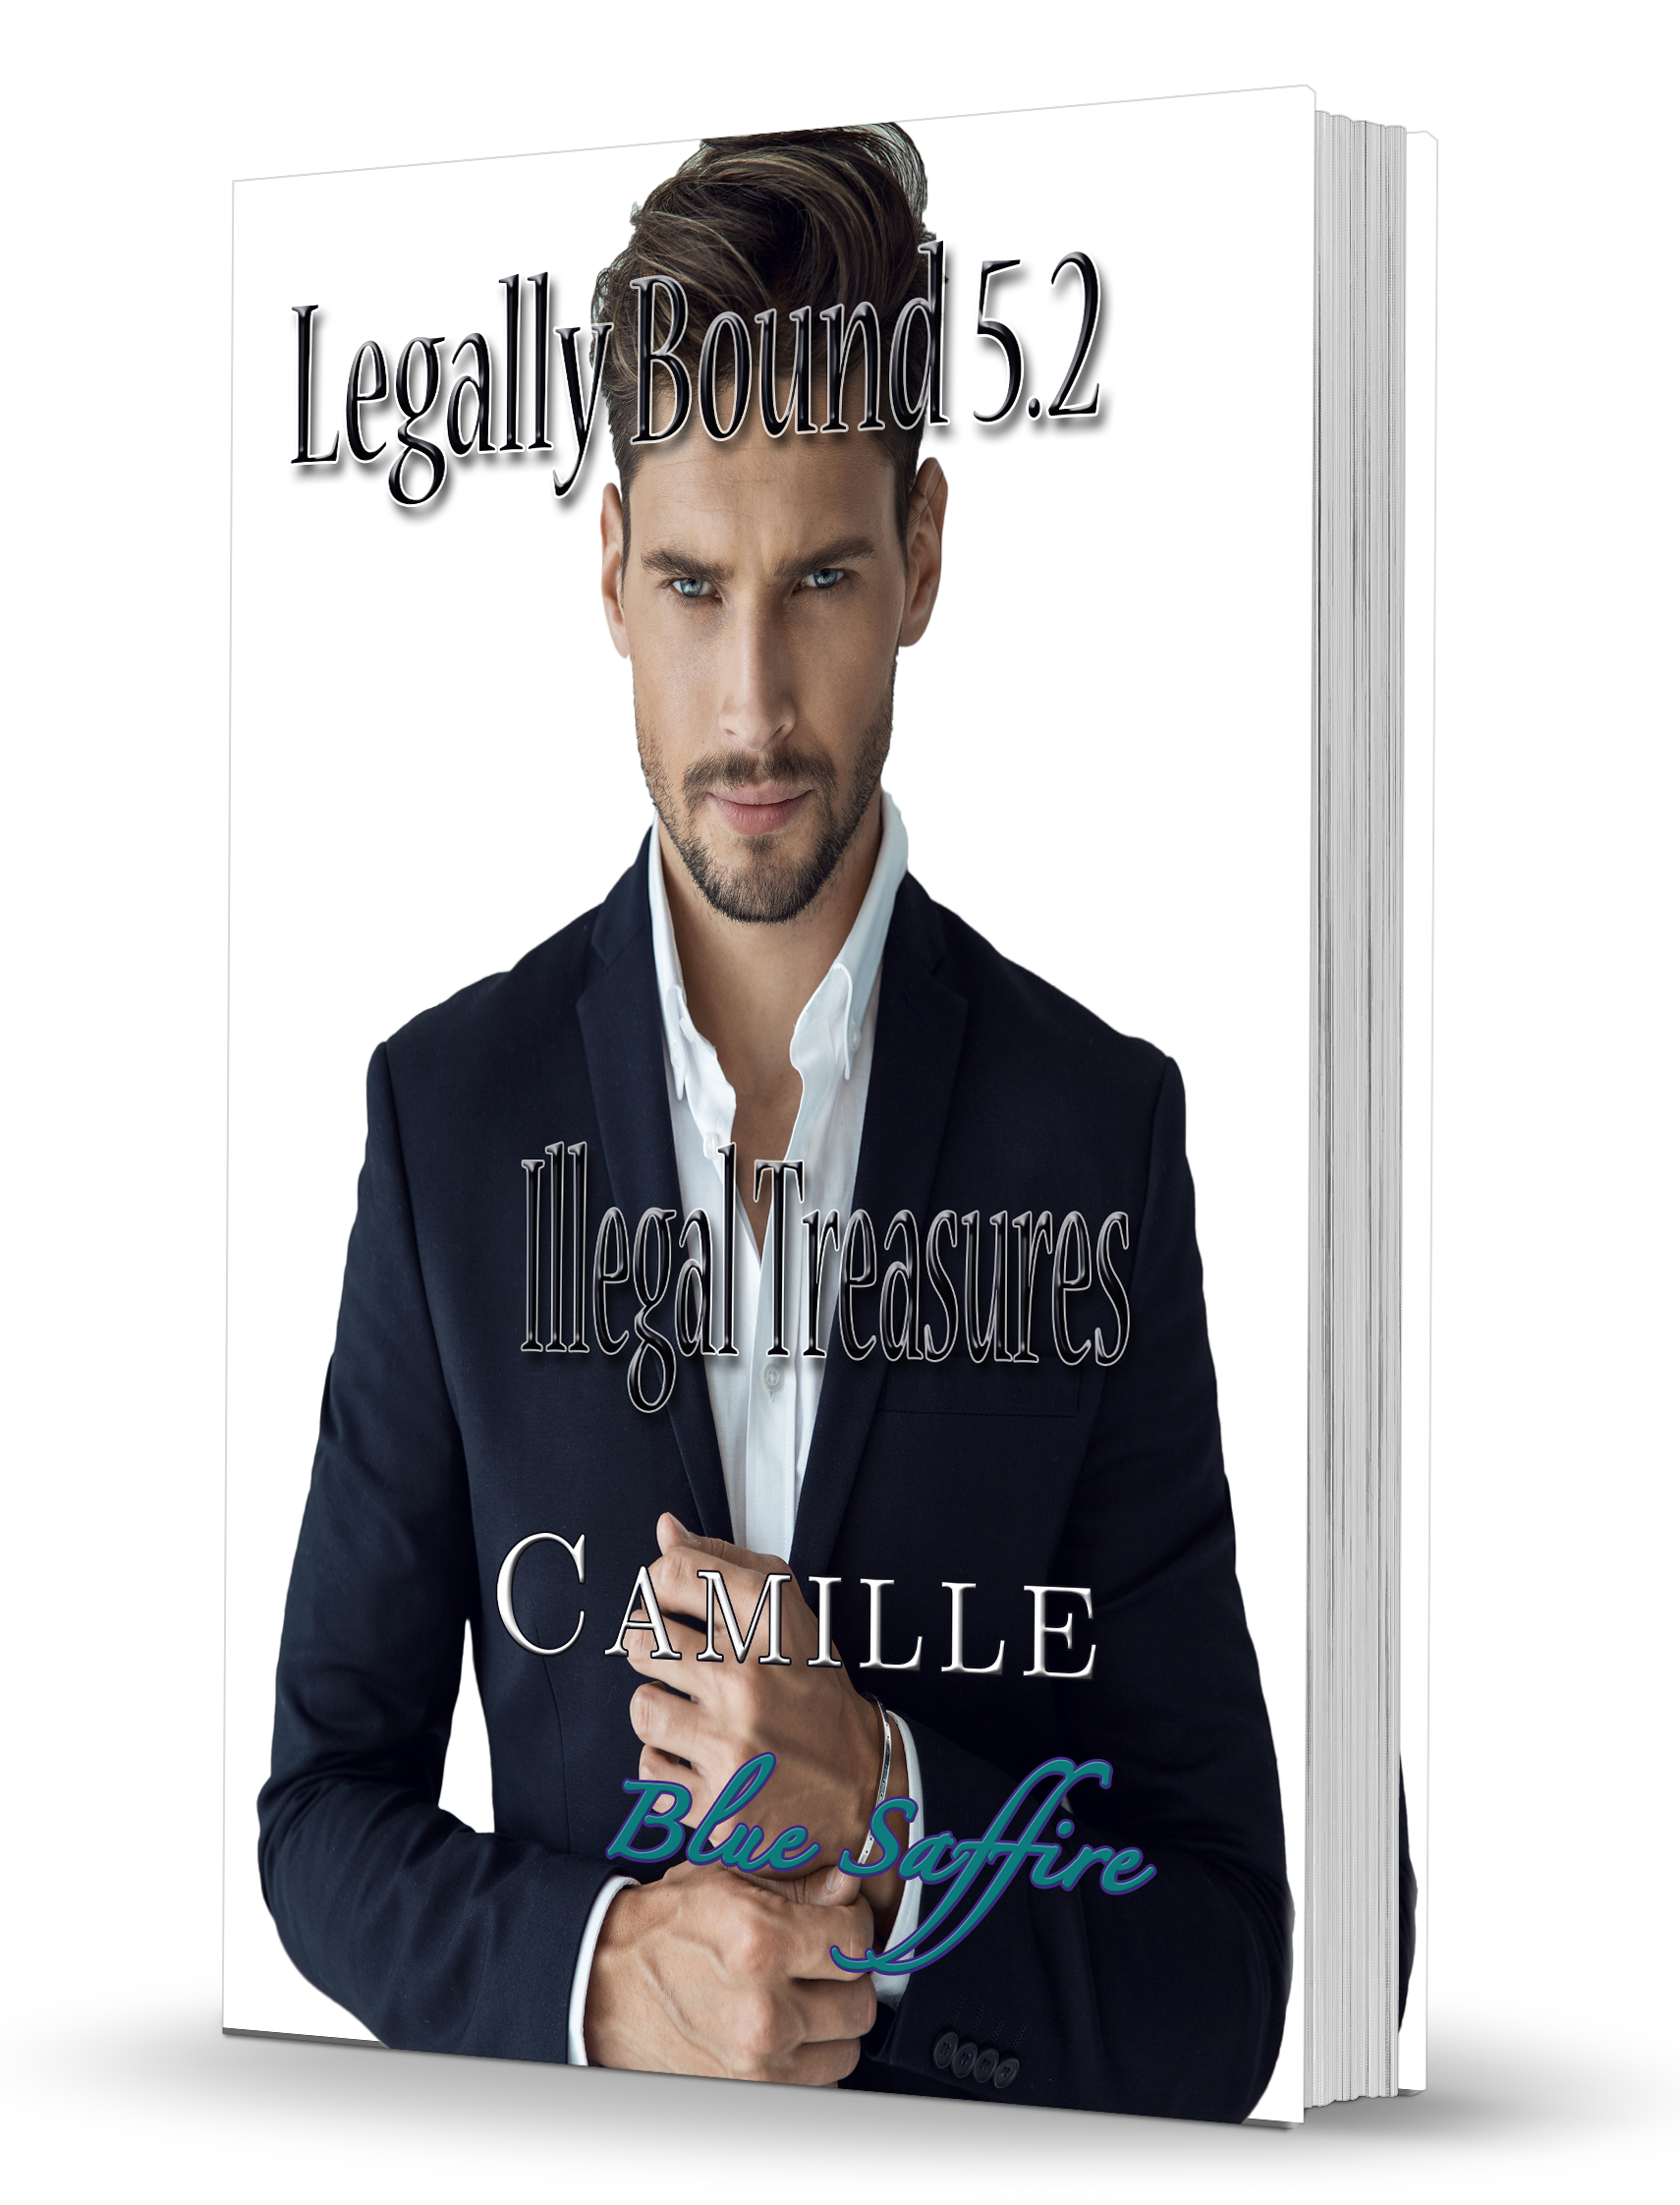 legally-bound-5-2-camille-hc-front